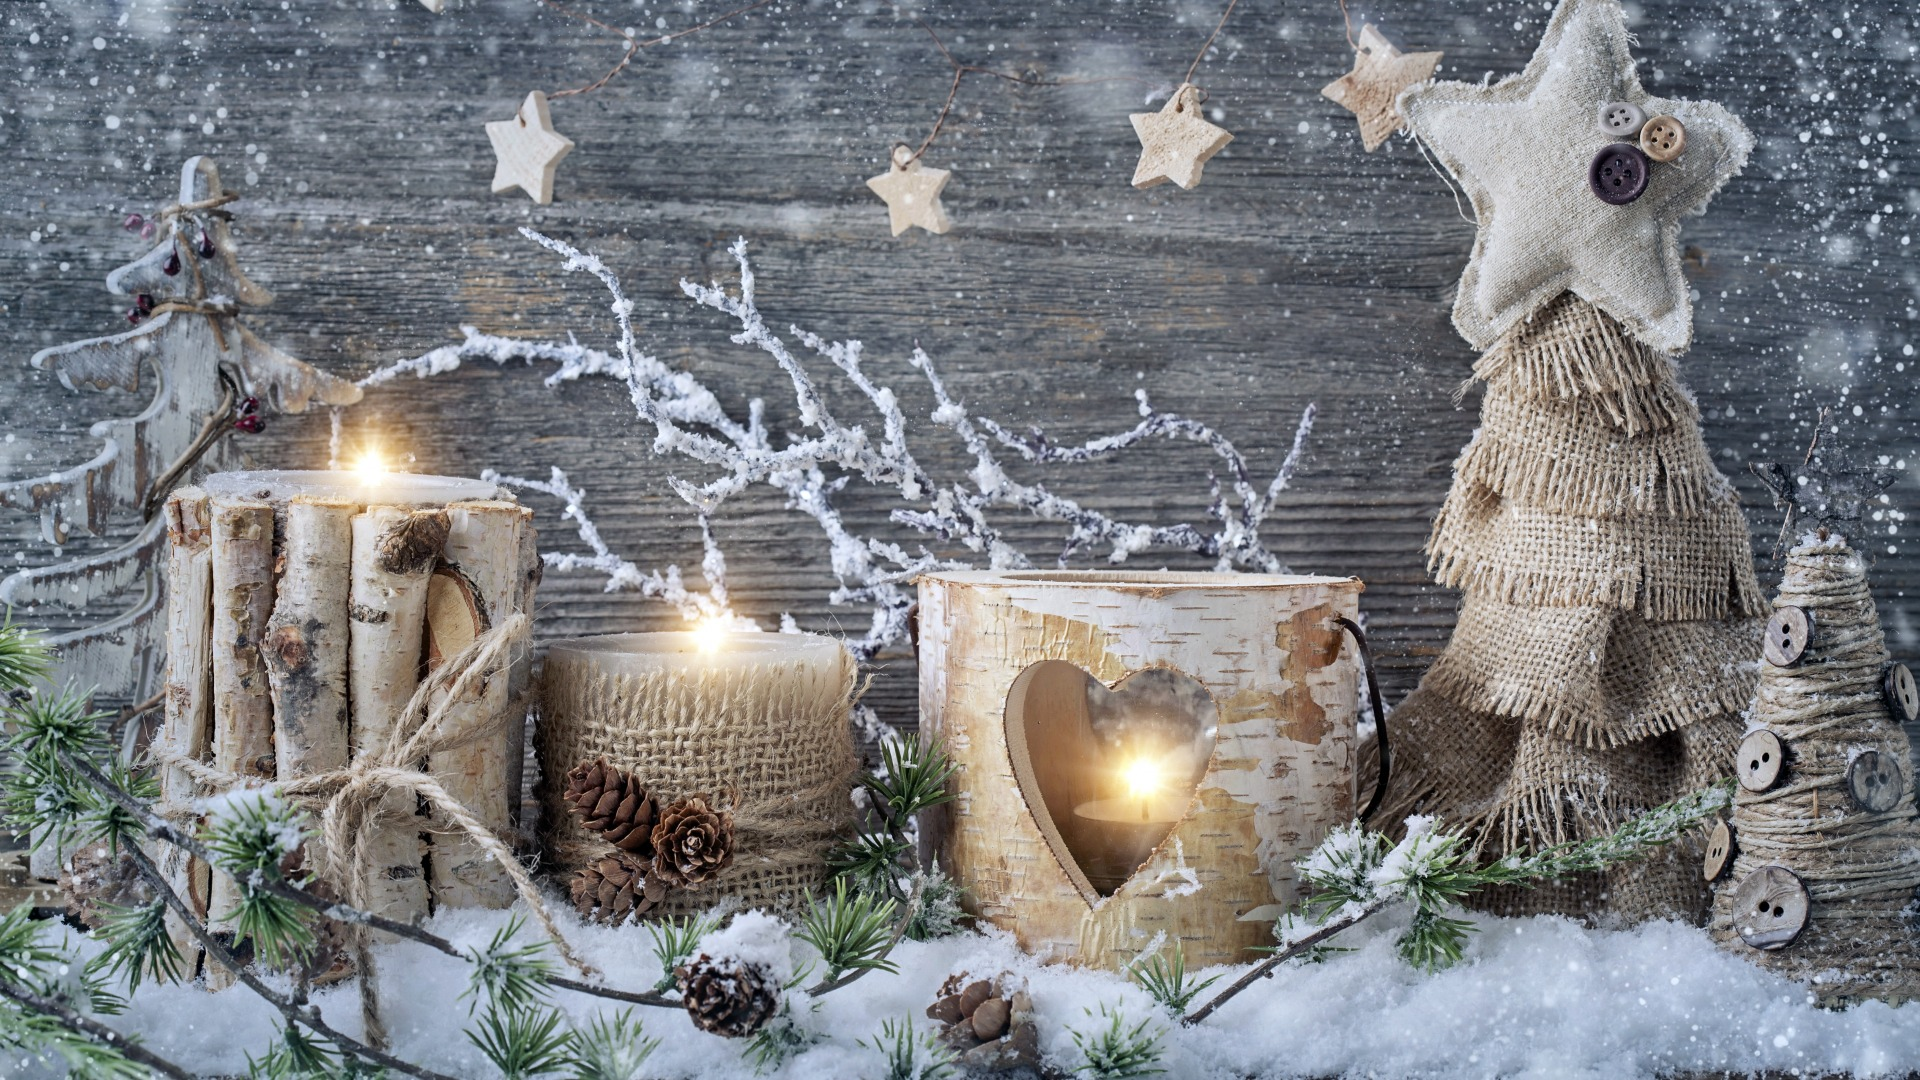 Download-snow-decoration-candles-New-Year-Christmas-Christmas-vintage-New-Year-dec-wallpaper-wp3404985